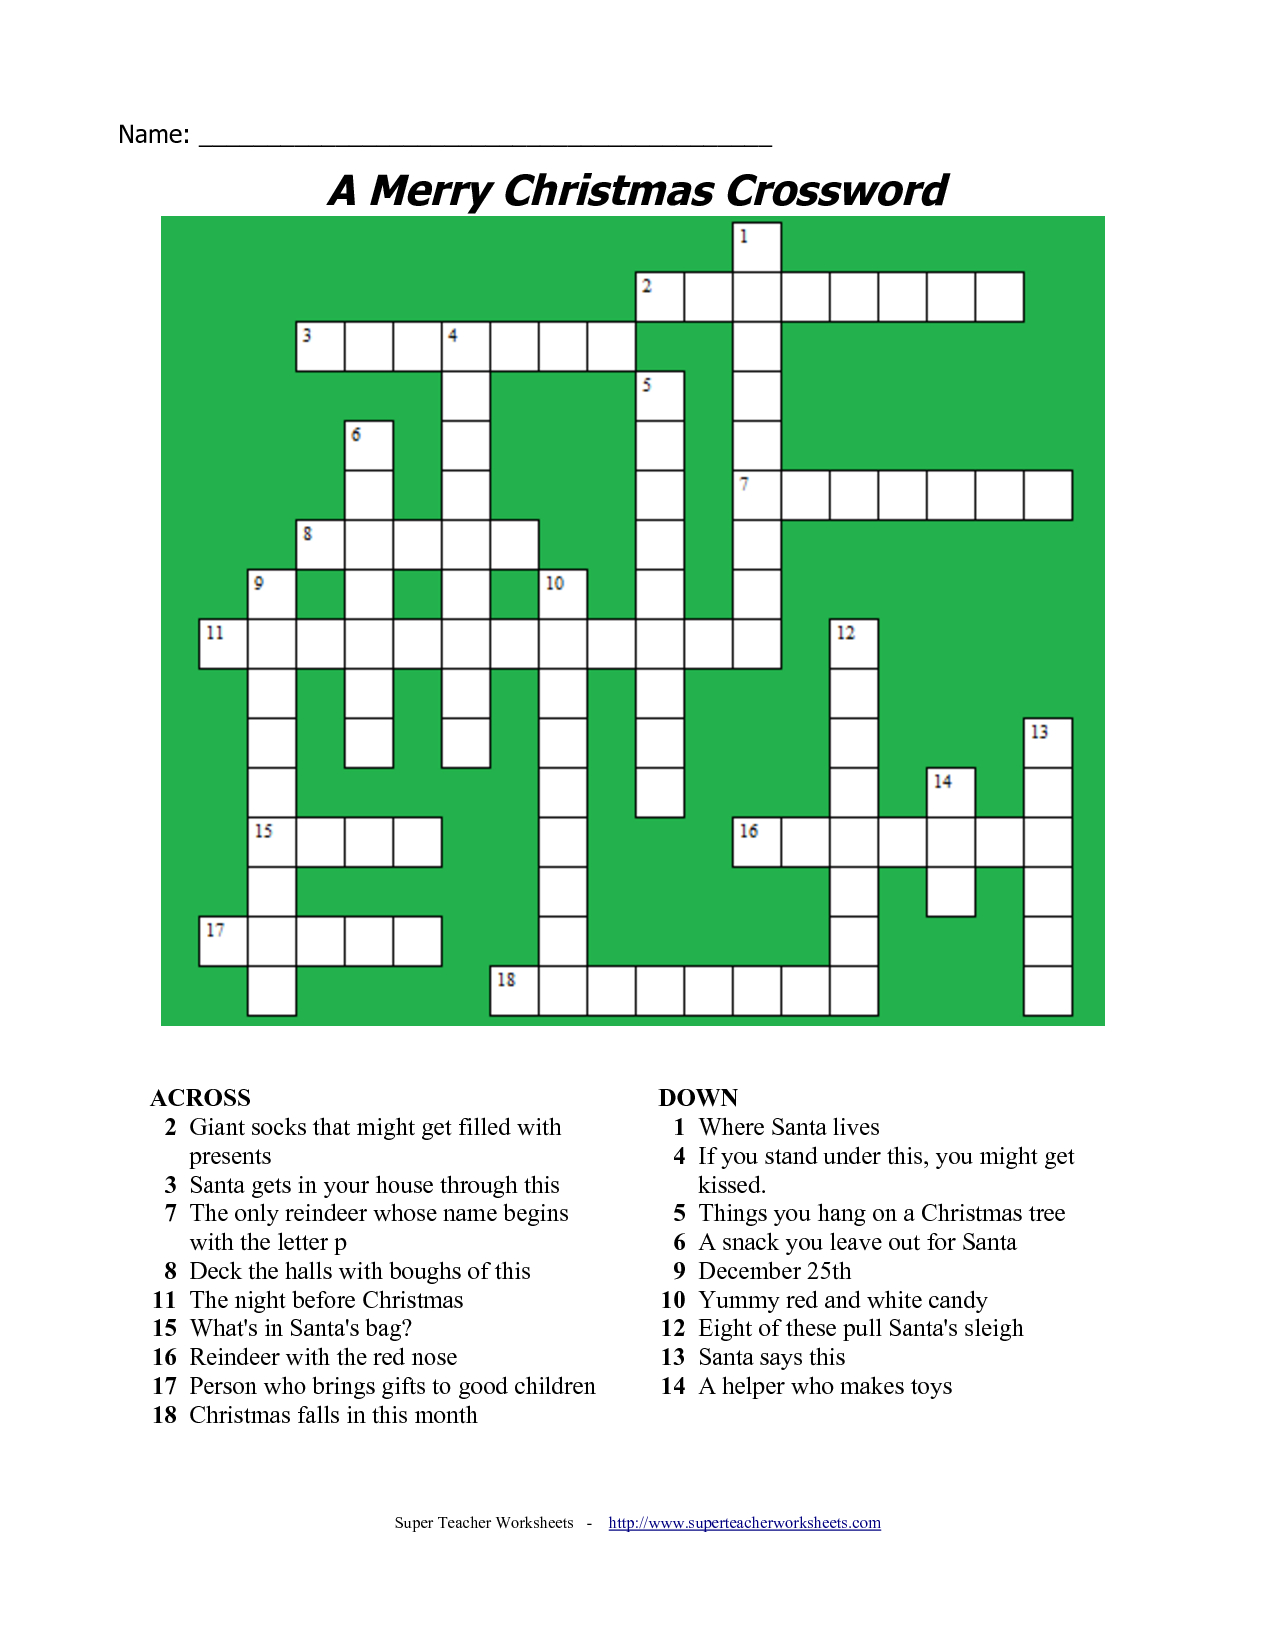 20 Fun Printable Christmas Crossword Puzzles | Kittybabylove - Christmas Crossword Puzzle Printable With Answers